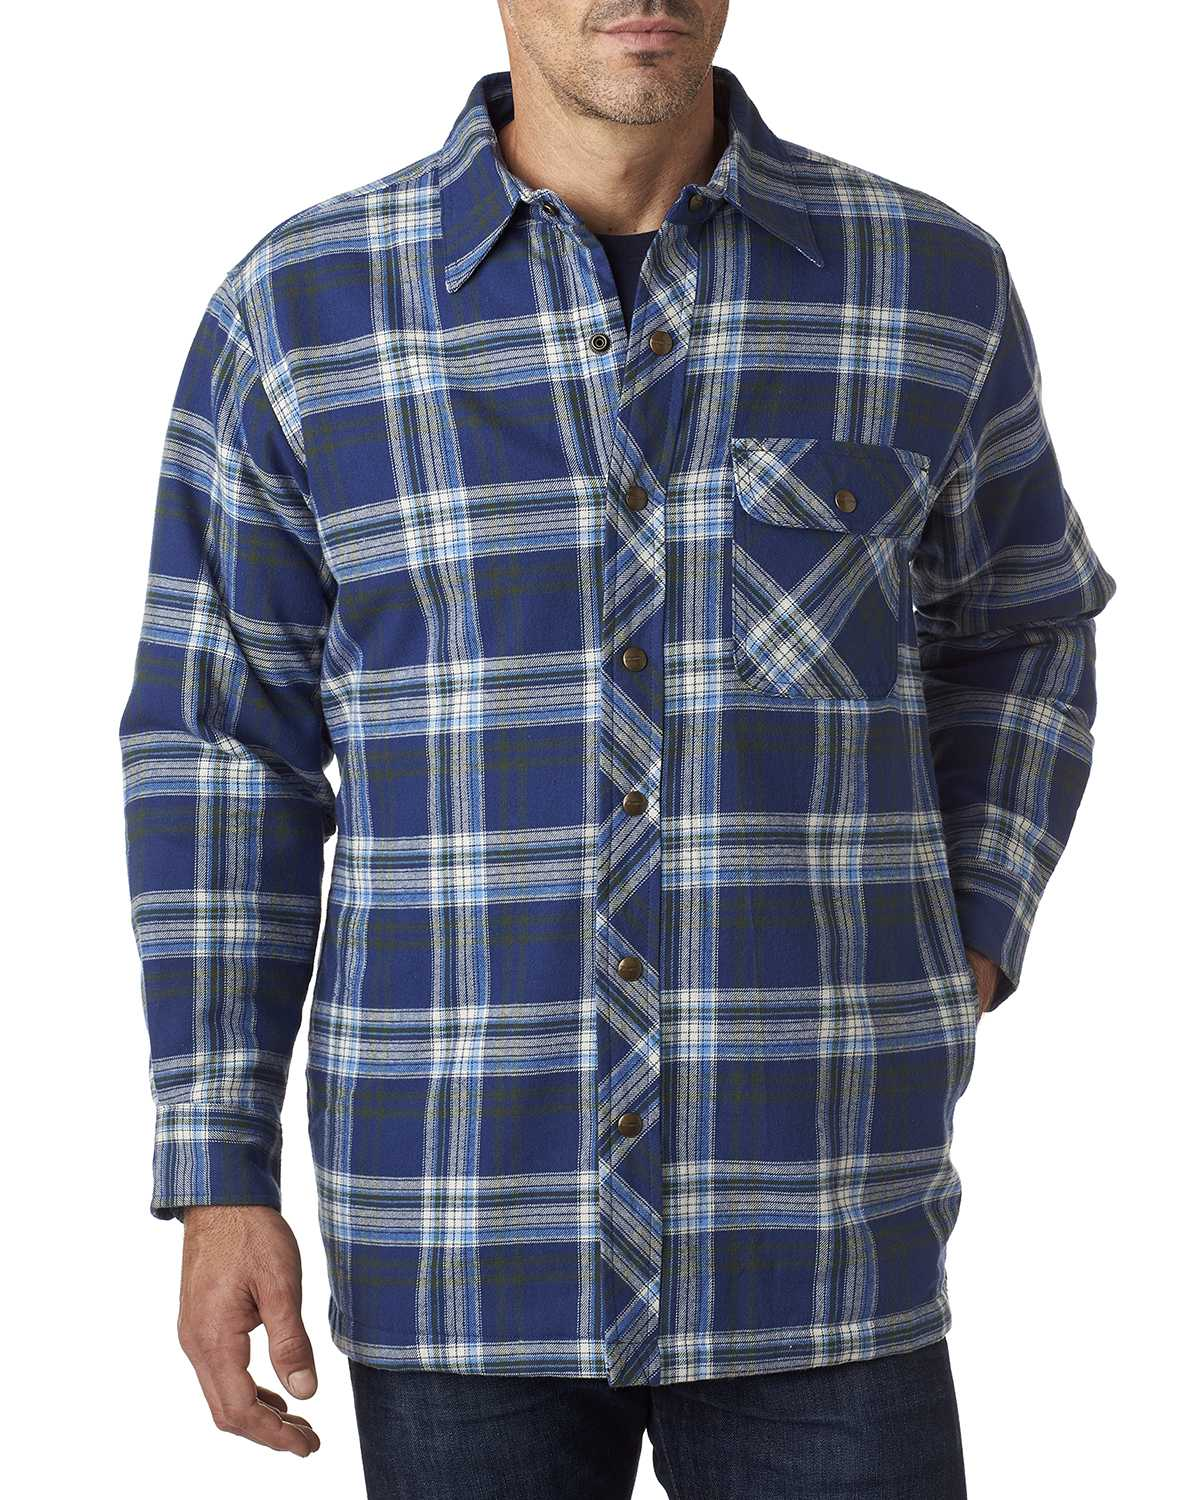 Backpacker Bp7002 Men S Flannel Shirt Jacket With Quilt